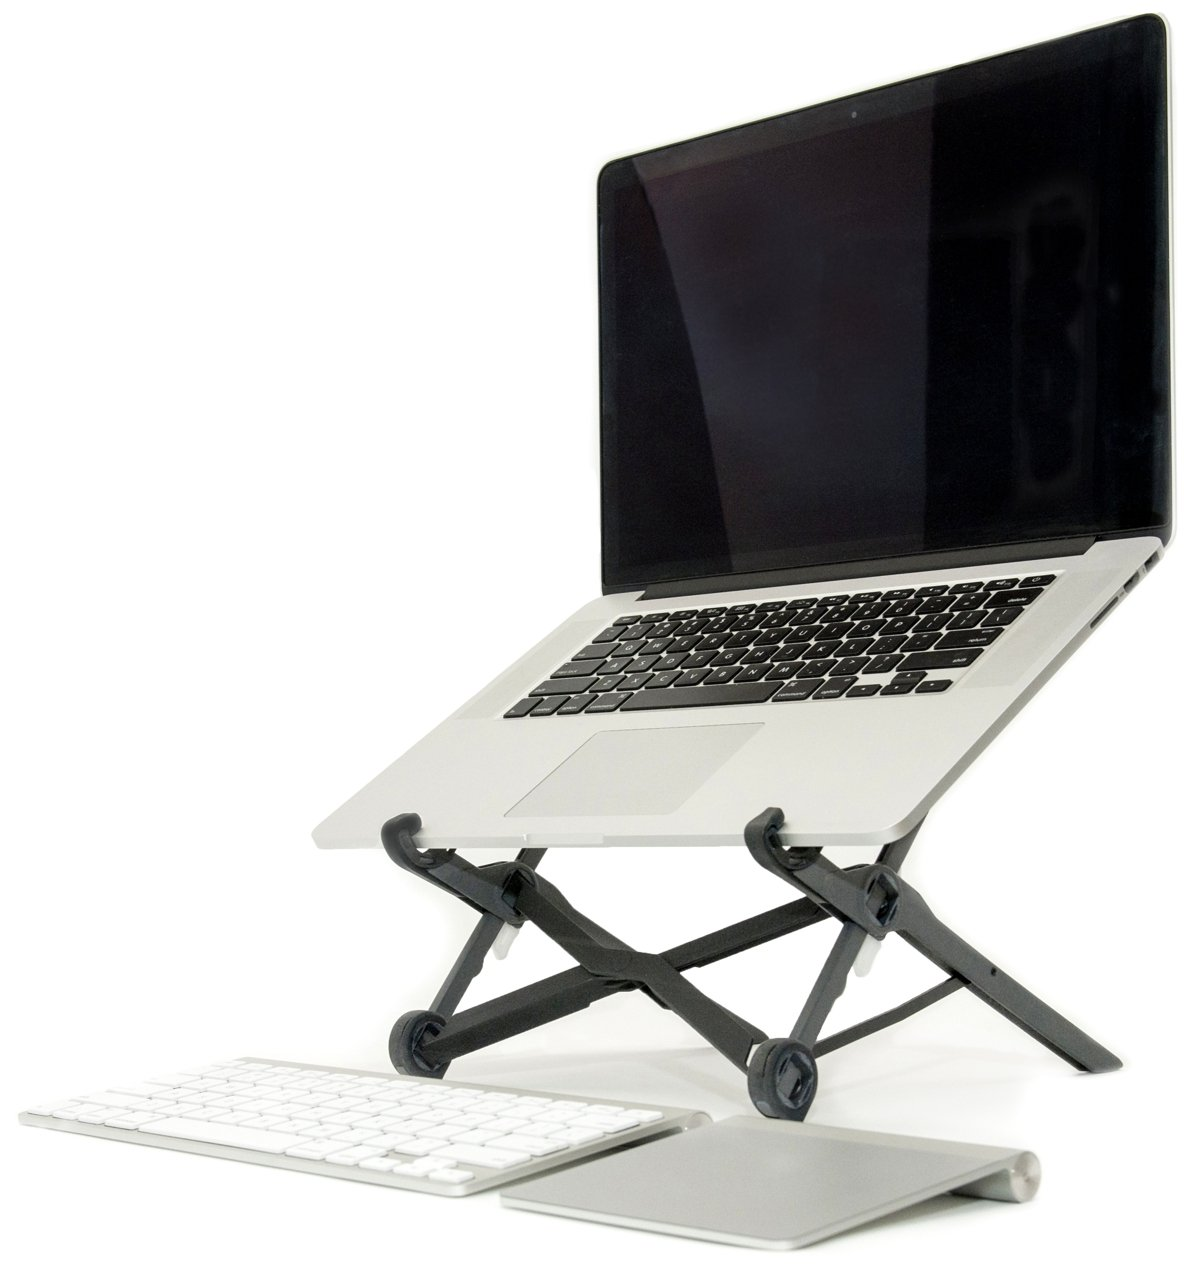 Portable adjustable laptop stand geek armory for Un stand